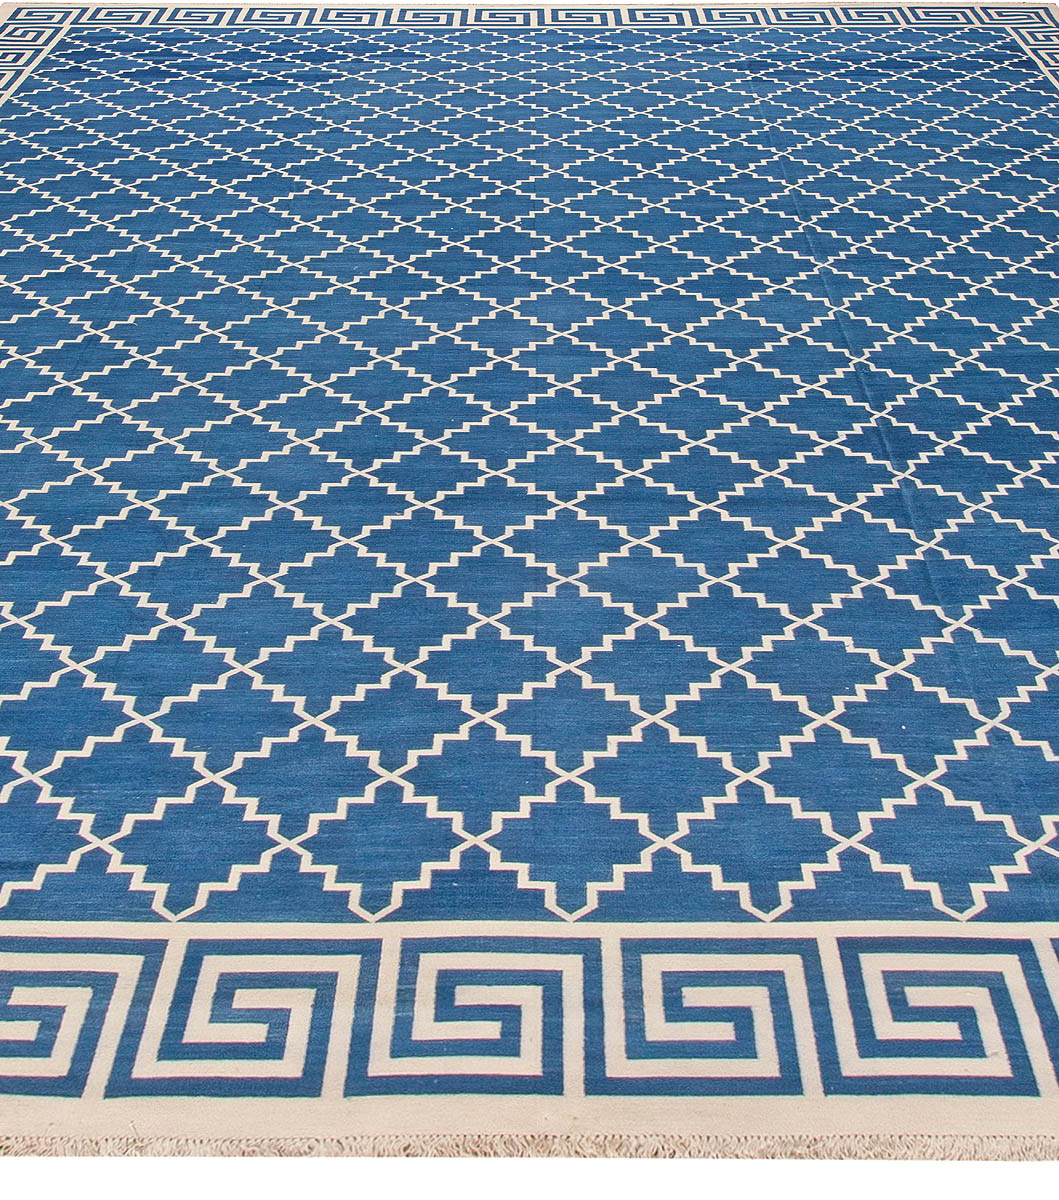 Indian Dhurrie Off-White and Indigo Flat-Woven Cotton Rug N11018